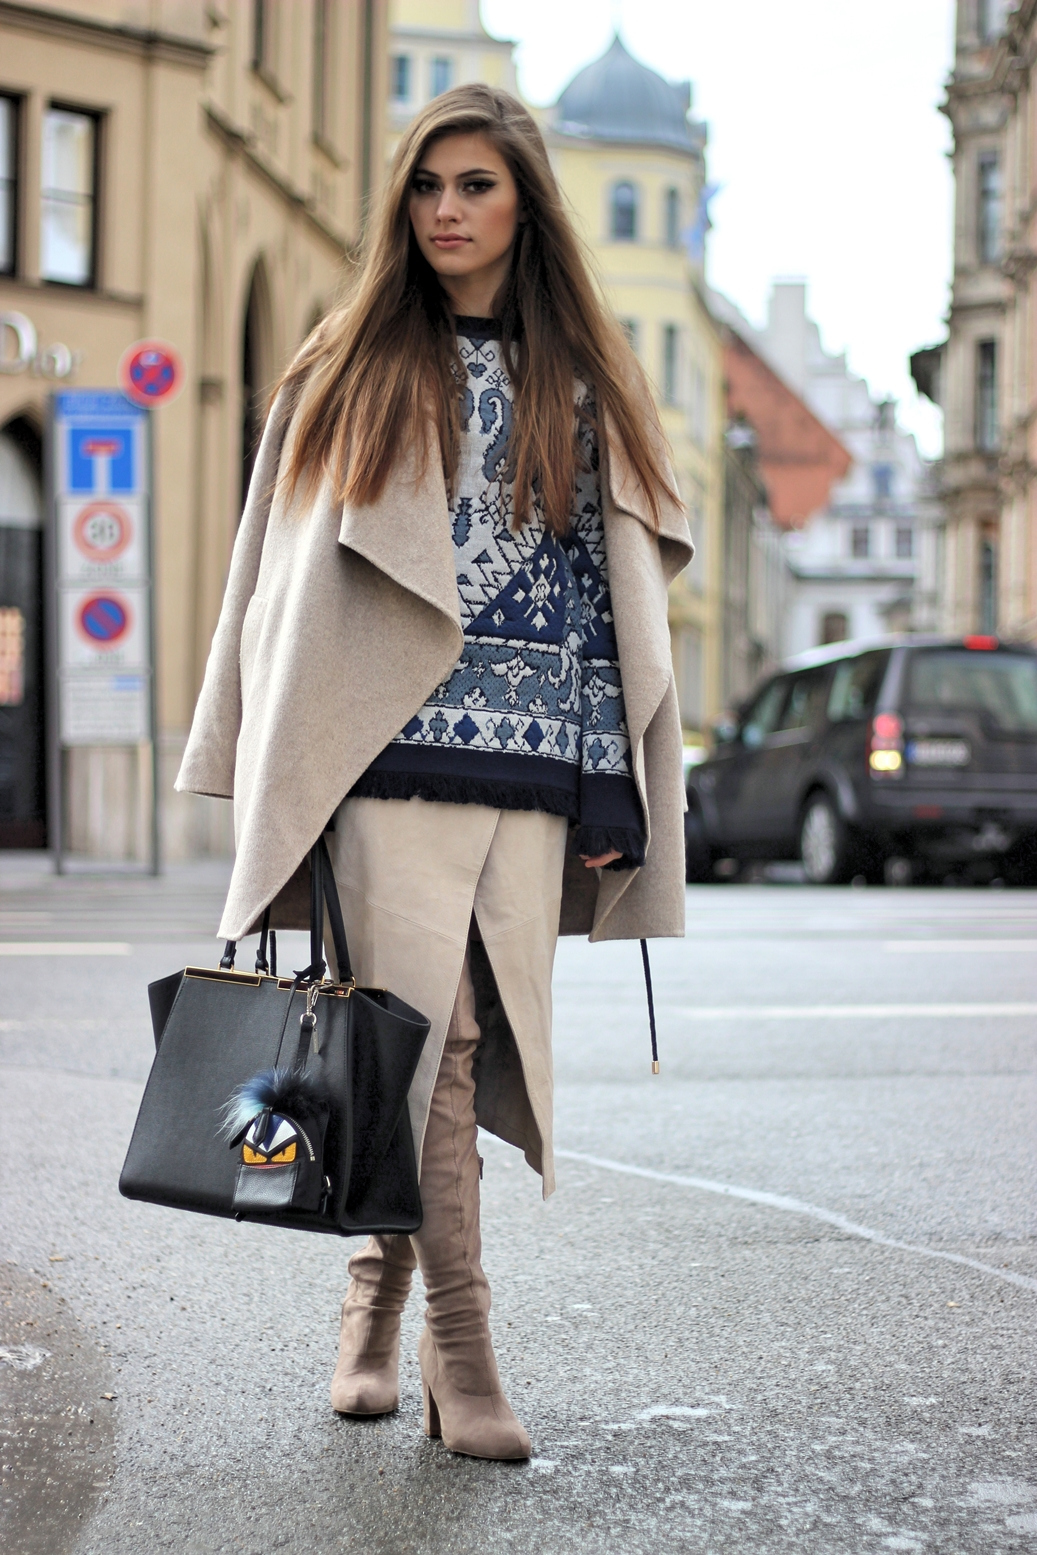 grey-coat-zara-fashion-outfit-streetstyle-toryburch-fendi-bag-sweater-overtheknee-boots